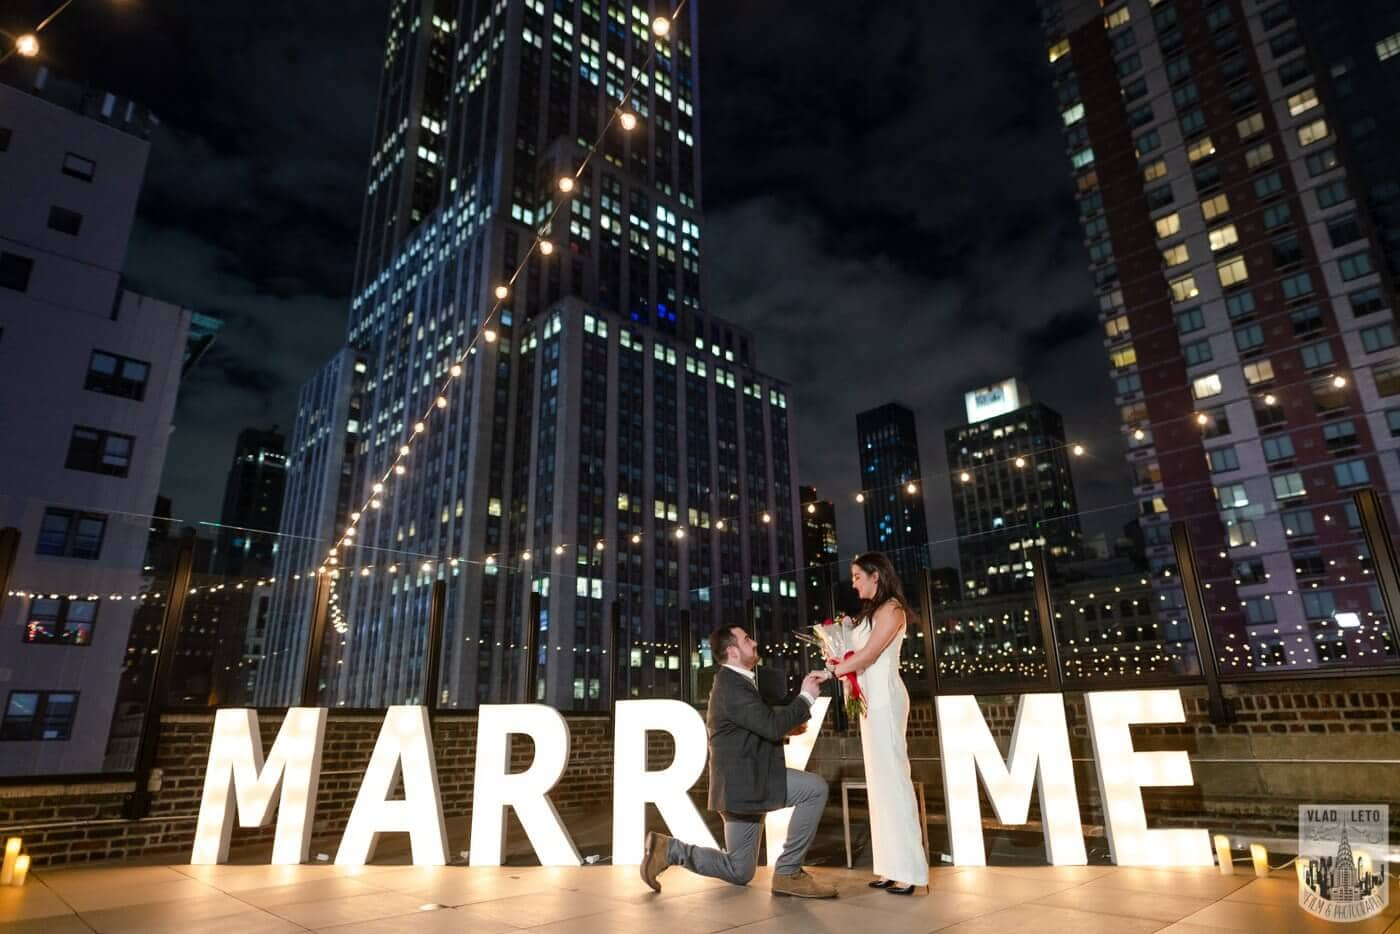 Photo 3 Gigantic Marry Me Letters Rooftop Proposal | VladLeto